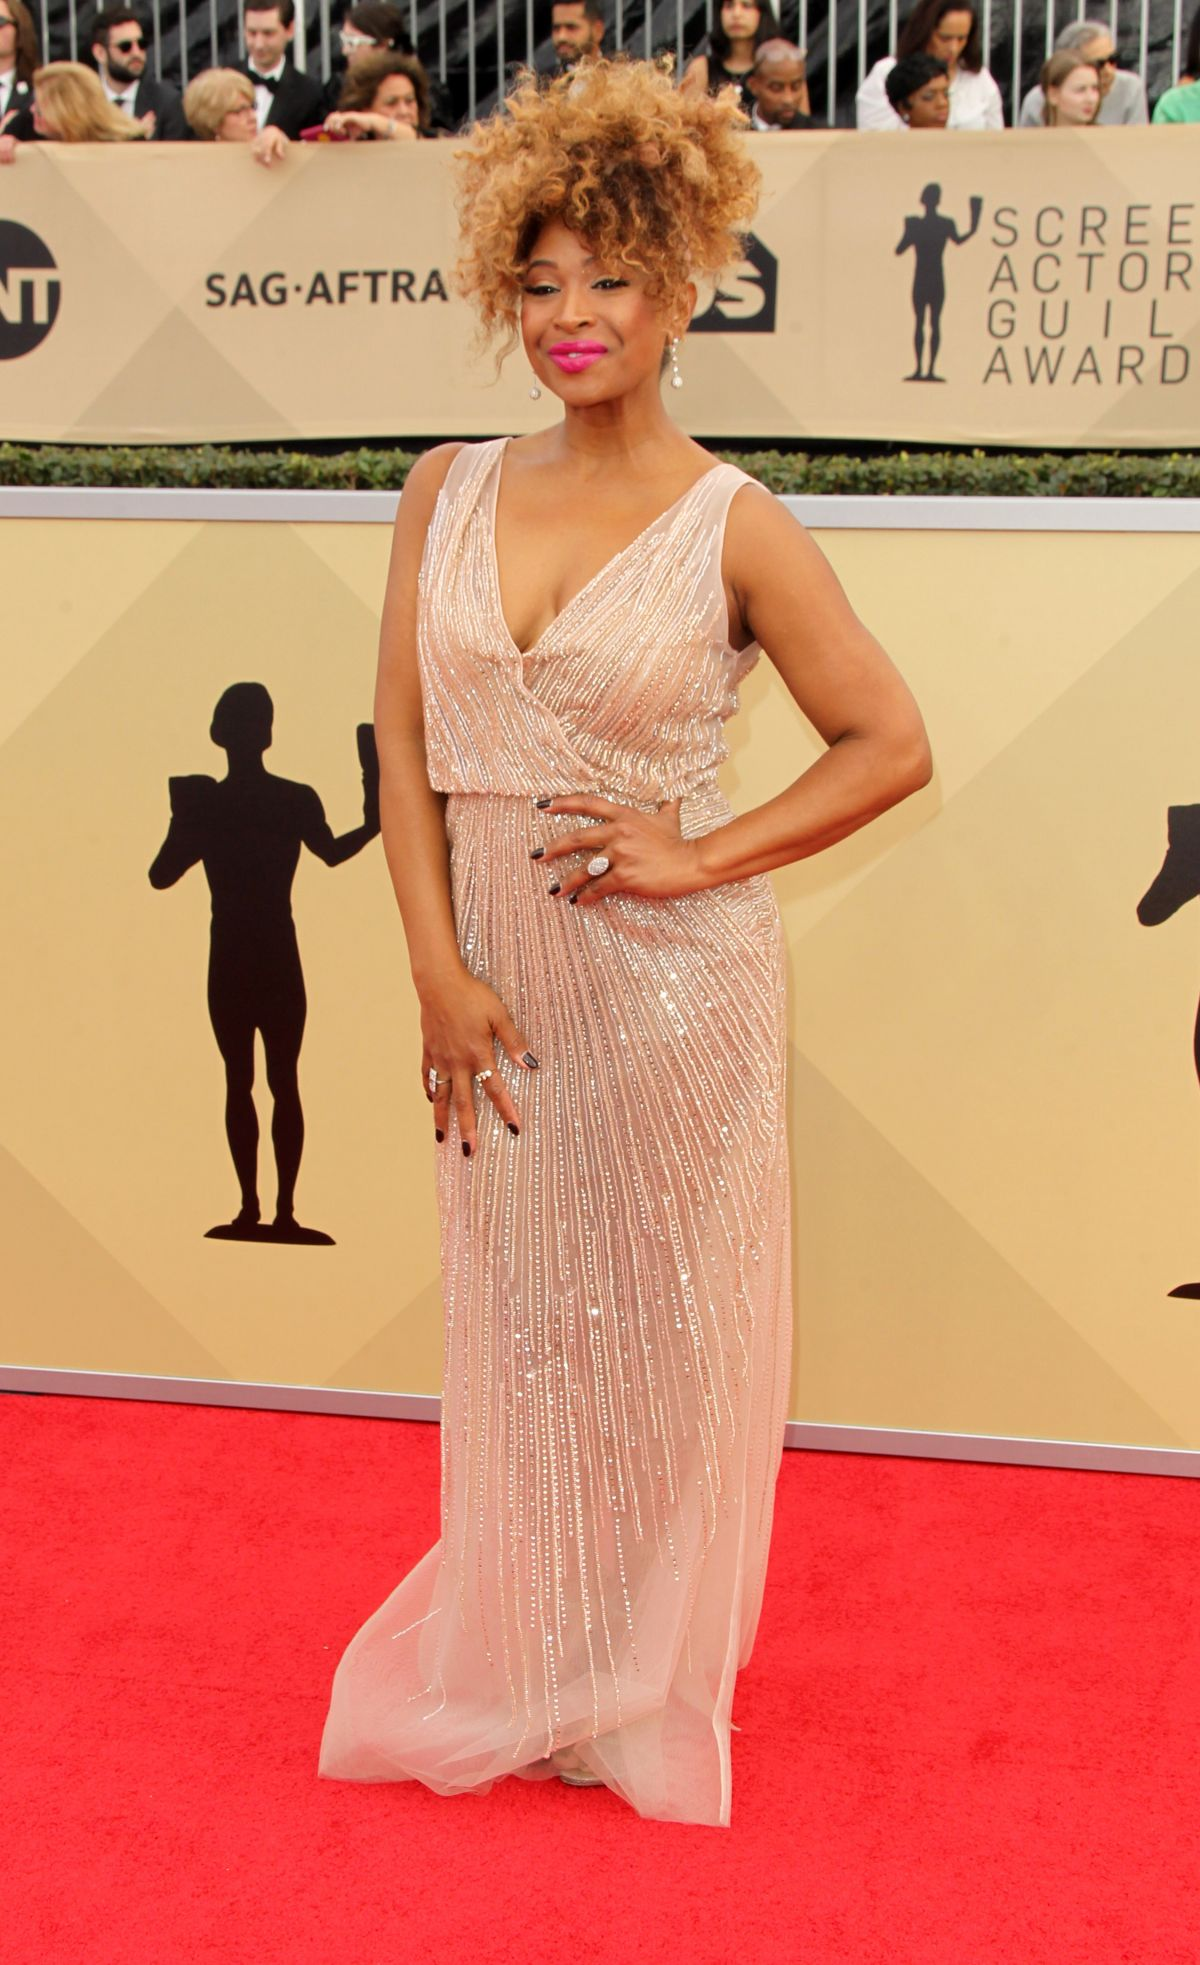 Tanika Ray At Screen Actors Guild Awards 2018 In Los Angeles 0121